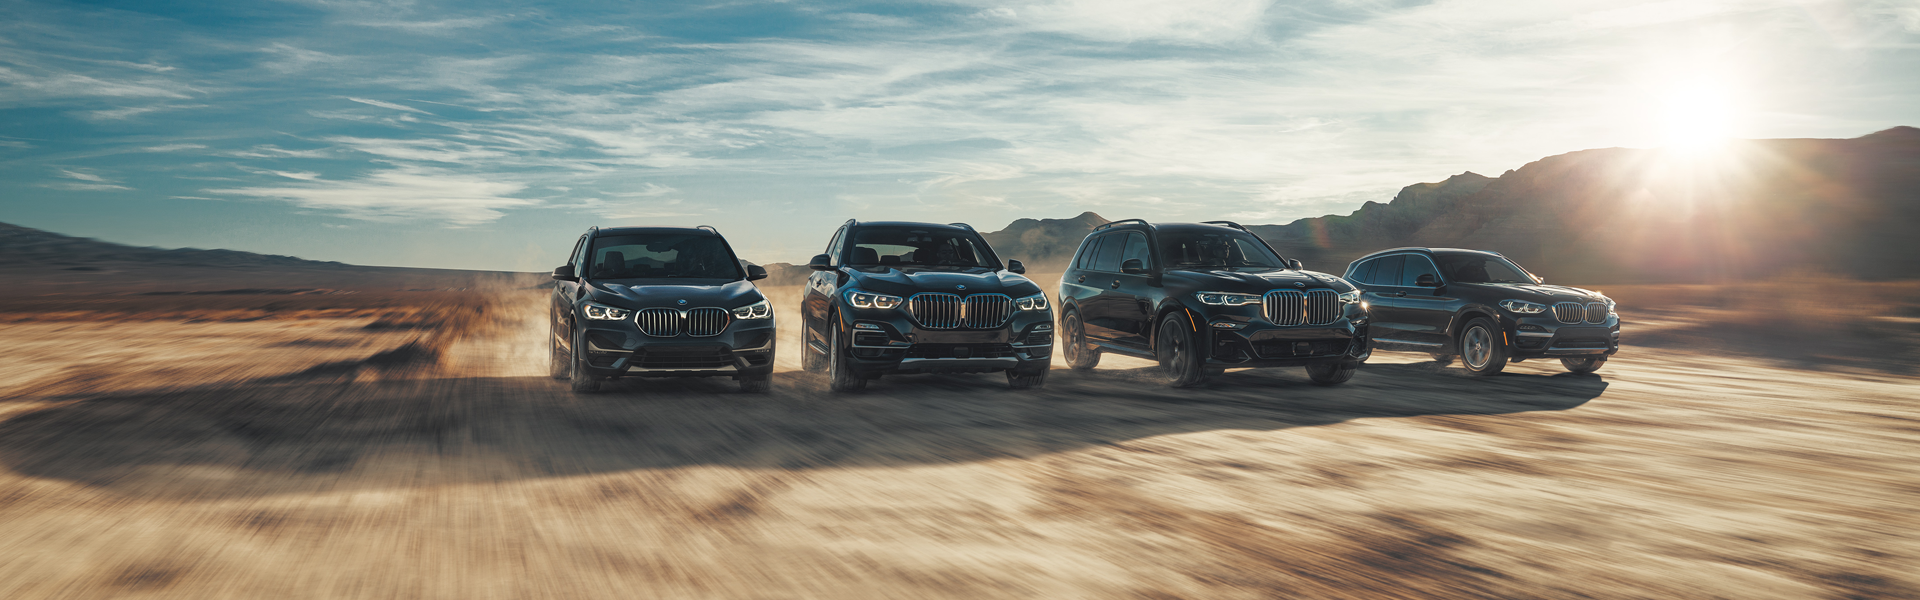 New BMW Models | Dreyer & Reinbold BMW South